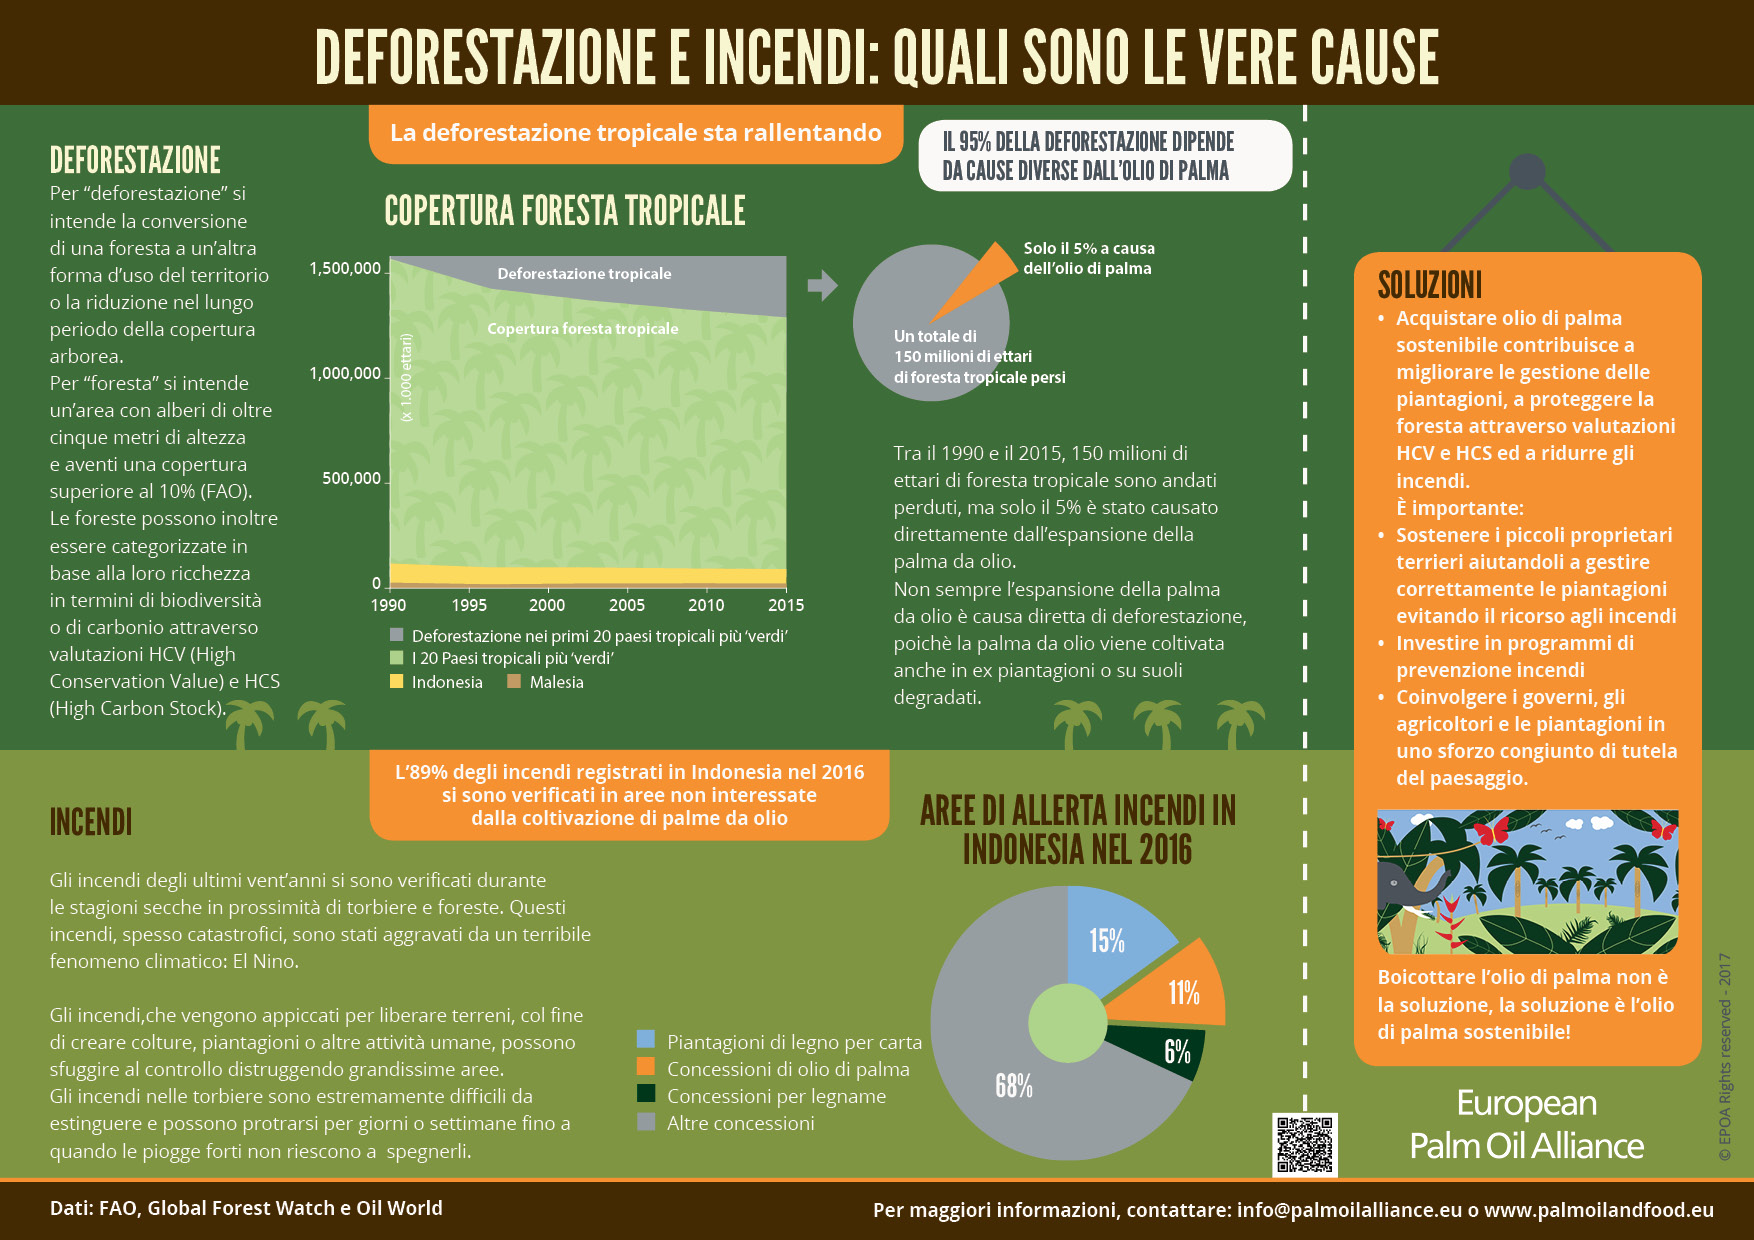 Deforestations and Forest Fires_FINAL_ITA